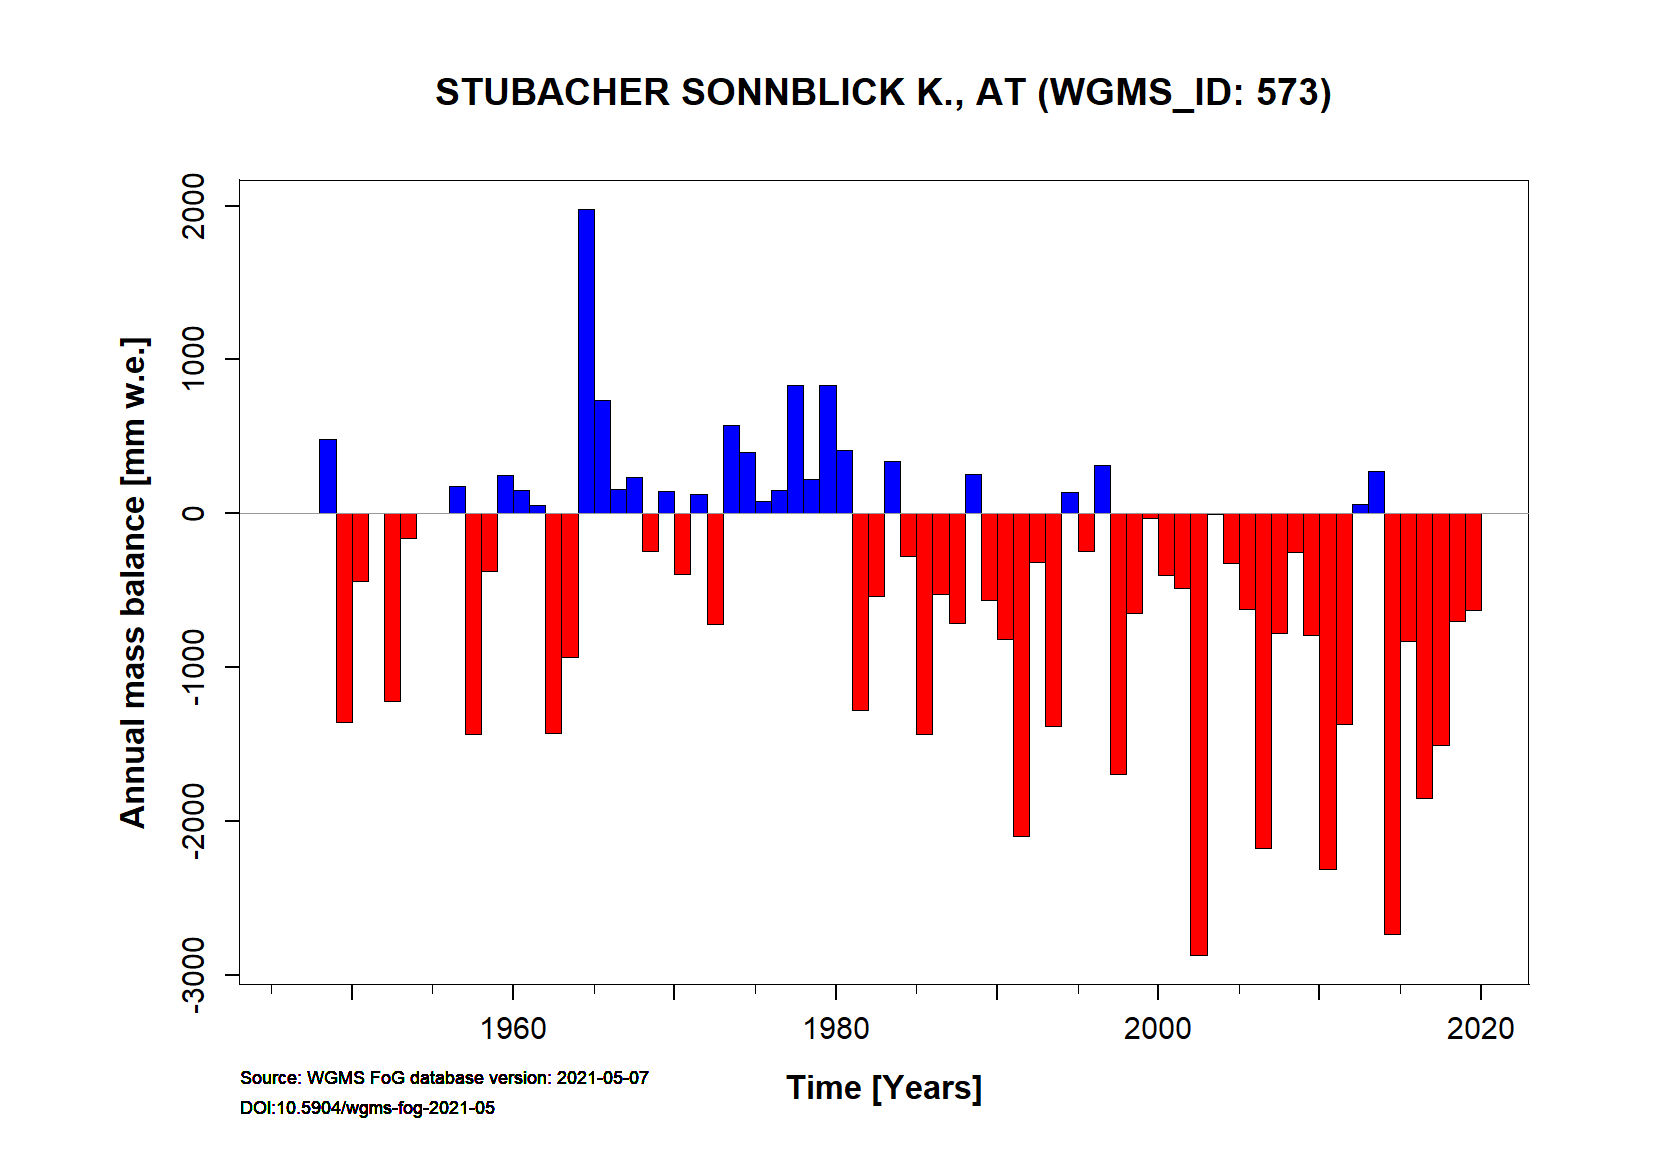 Stubacher Sonnblickkees Annual Mass Balance (WGMS, 2016)